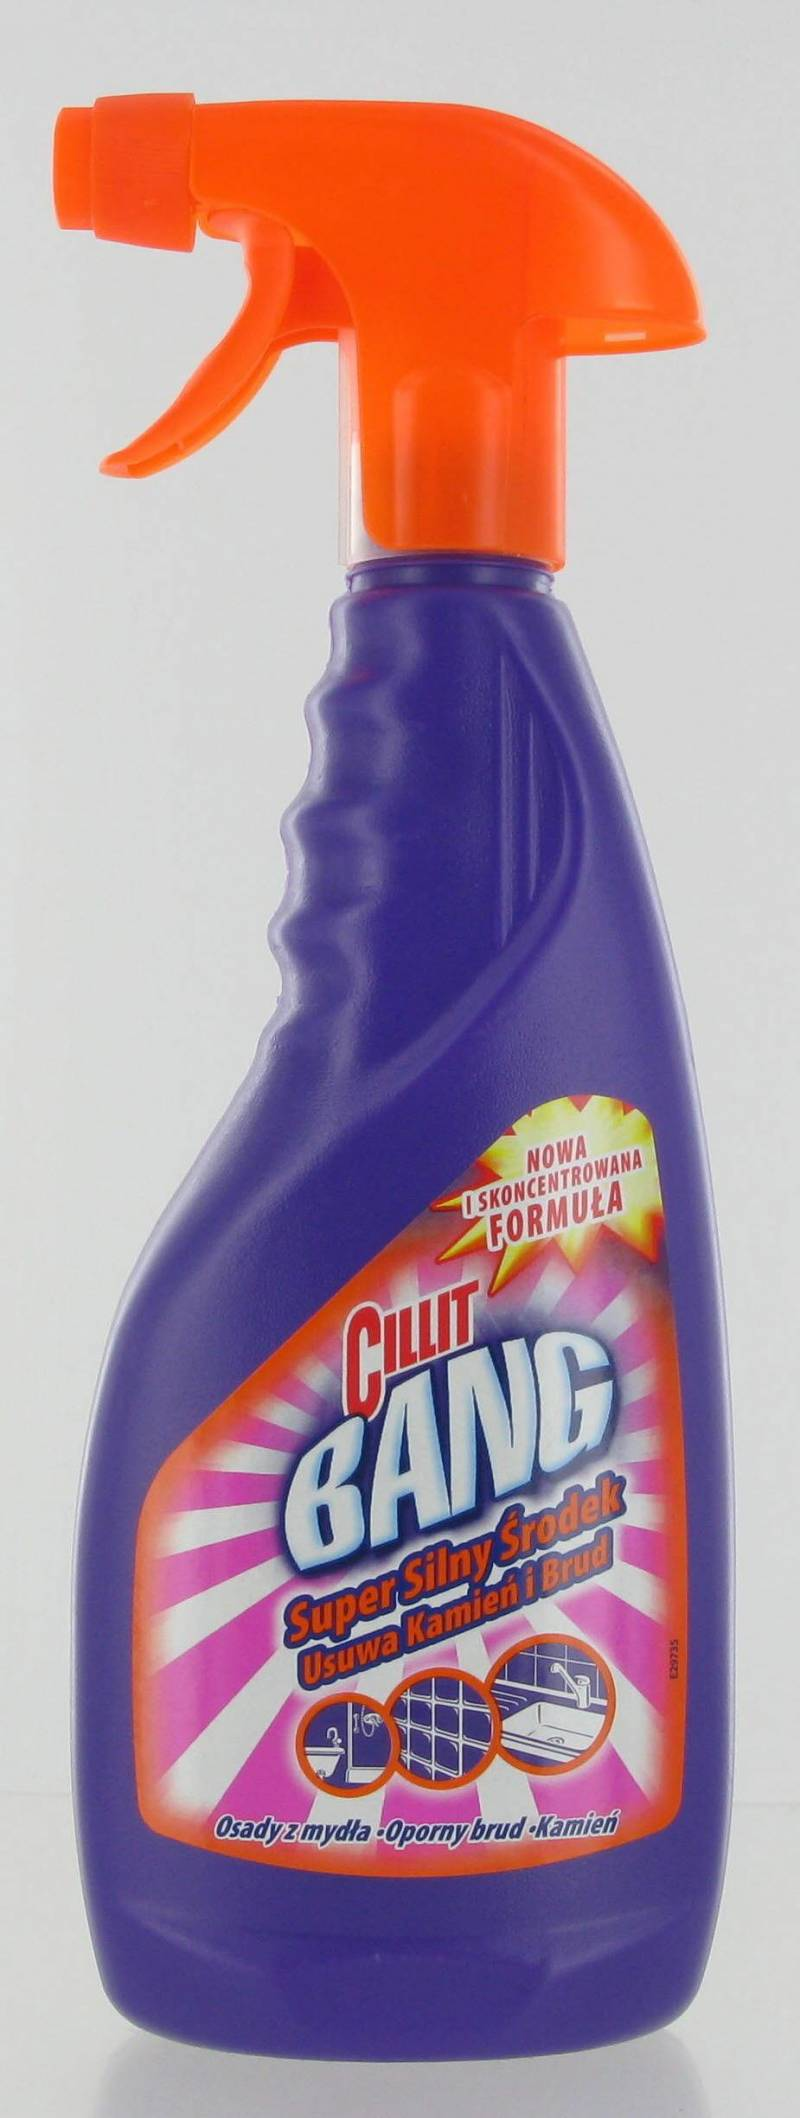 CILIT Bang Super extra strong cleaning product